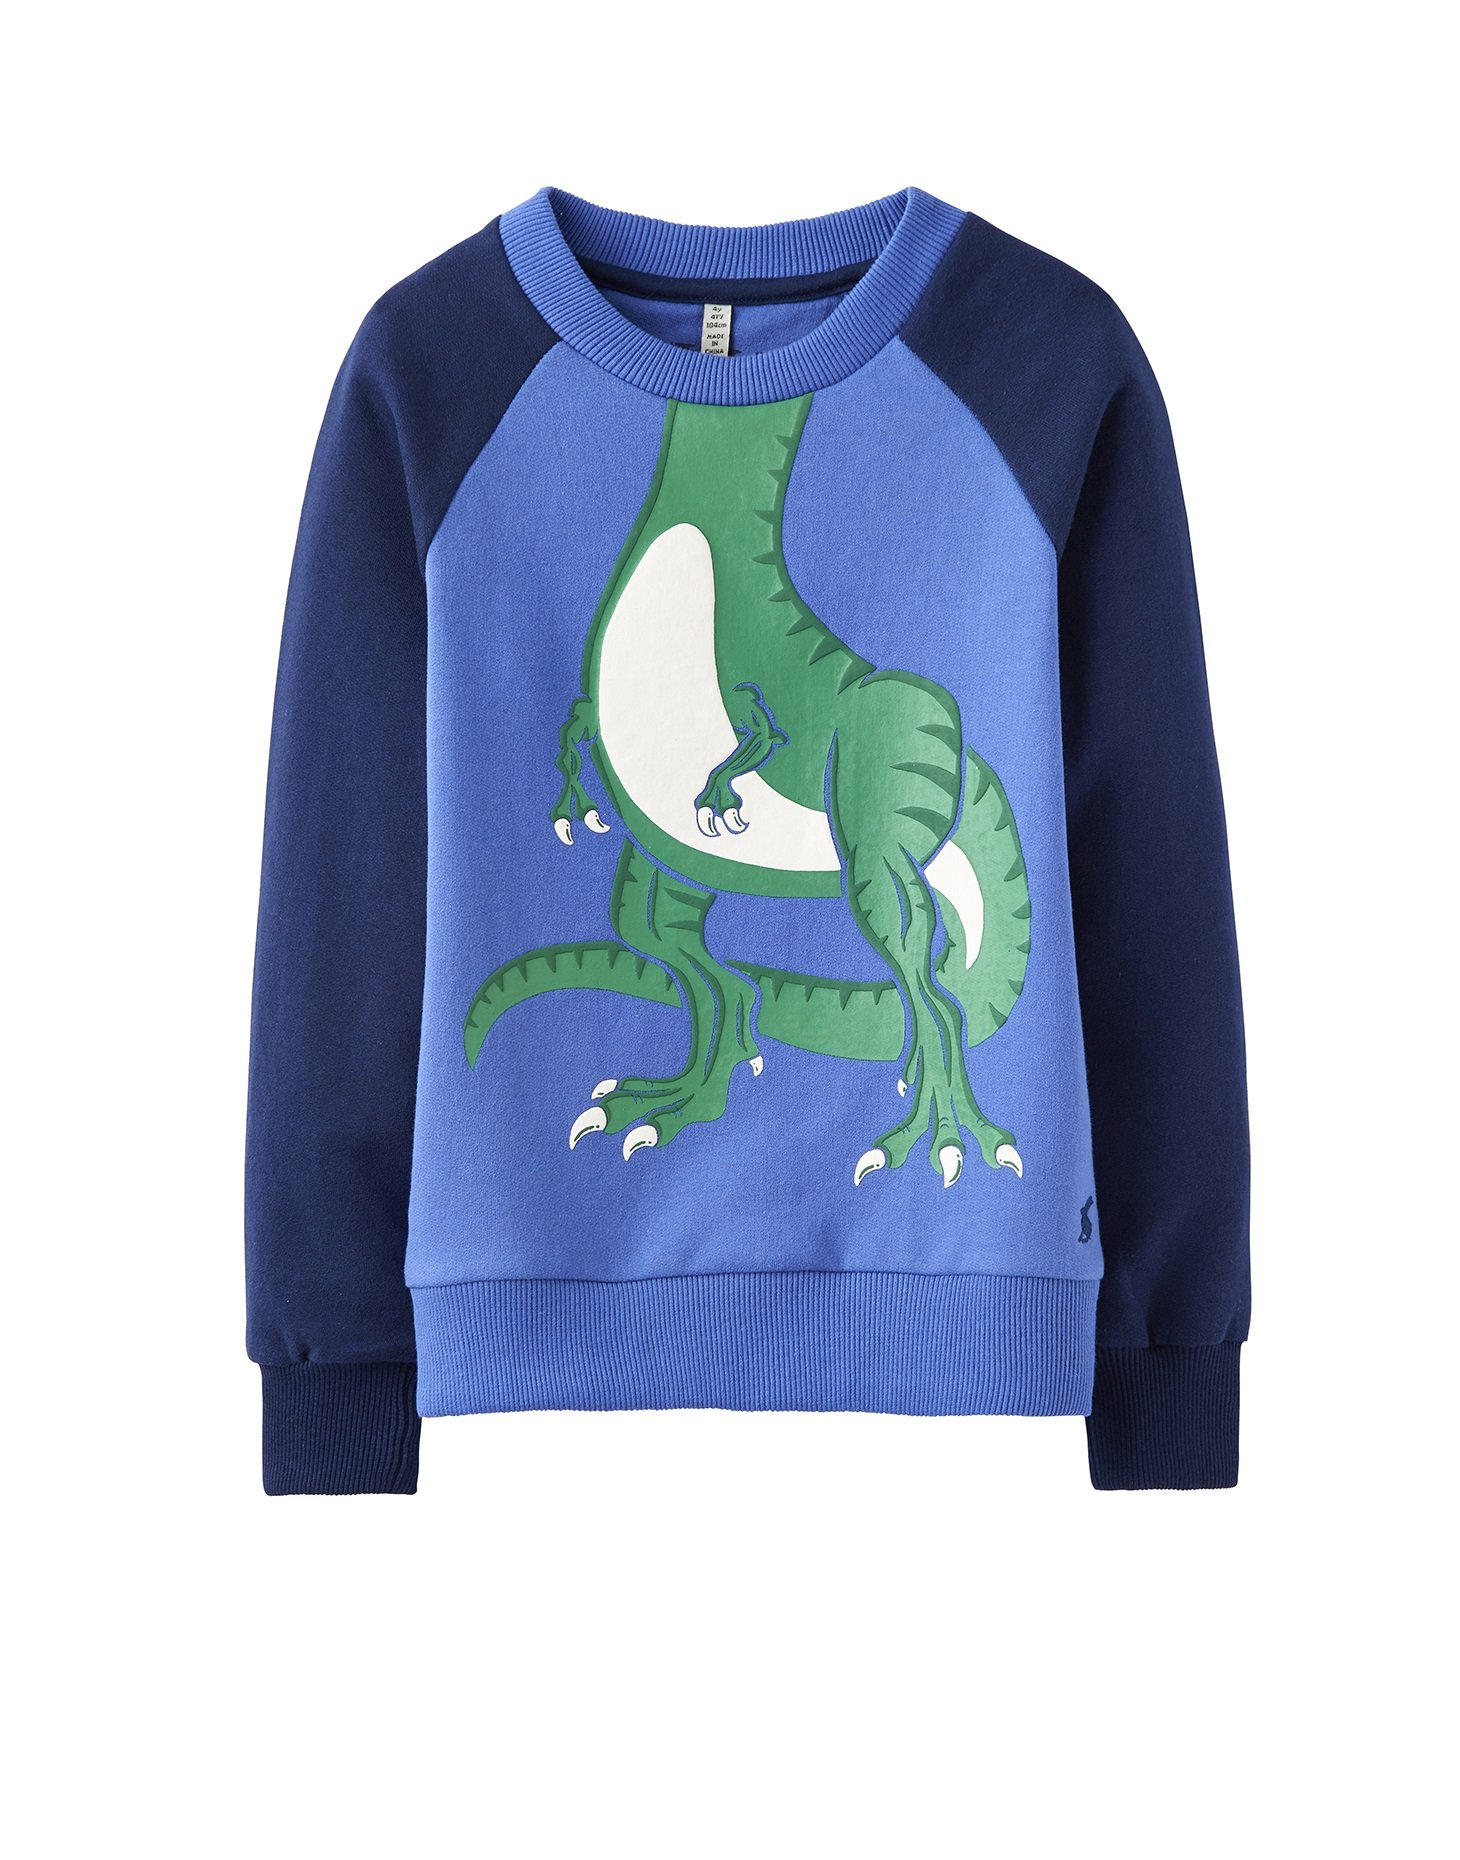 Joules Novelty Sweatshirt - Dazzling Blue - 1 Year - 80 cm by Joules